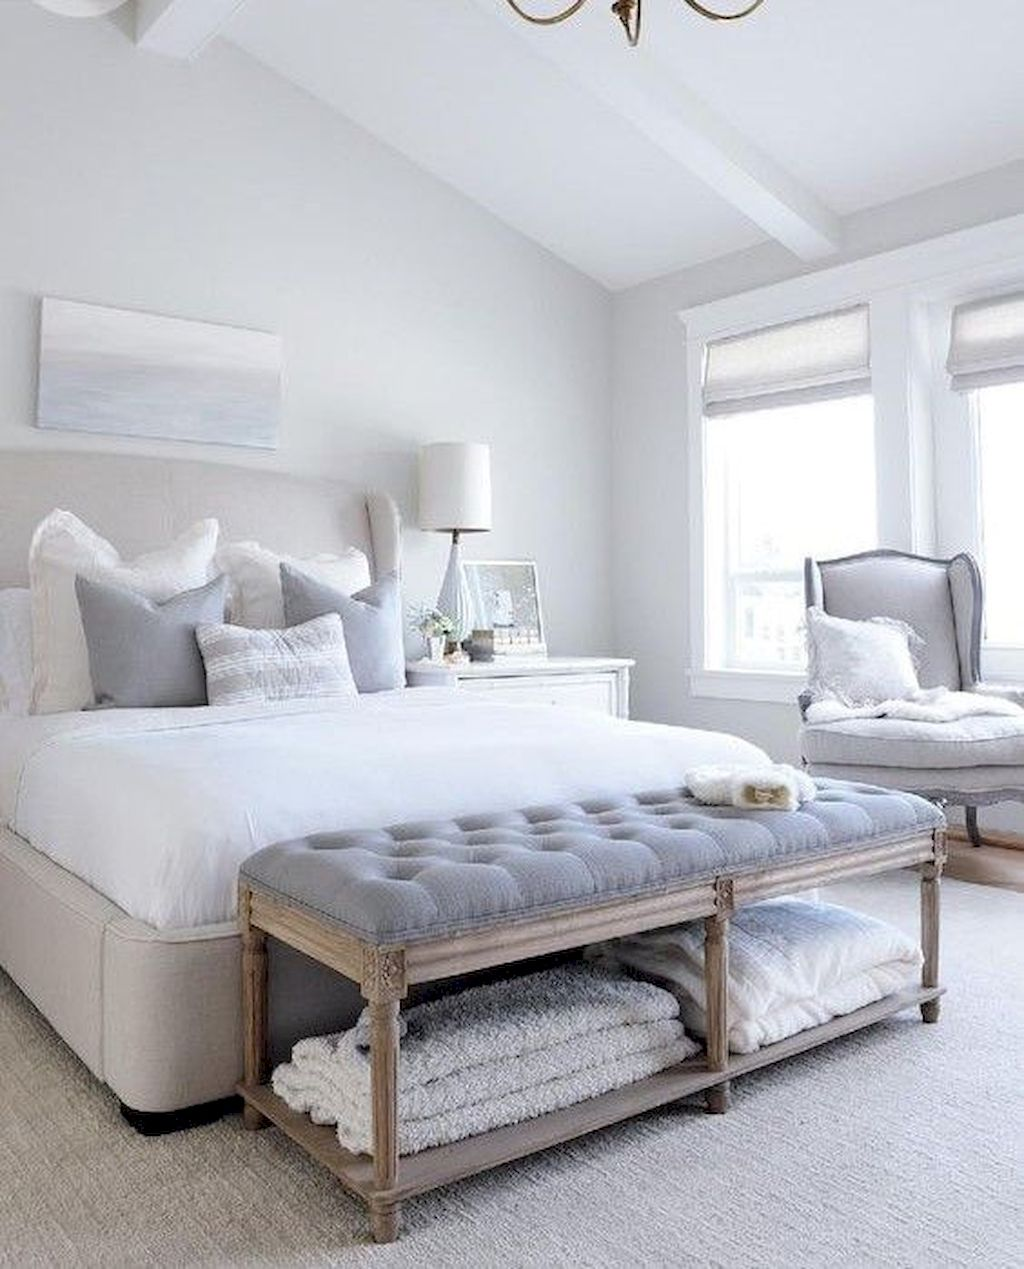 Affordable Bedroom Design With Comfortable Beds and Furniture Part 15